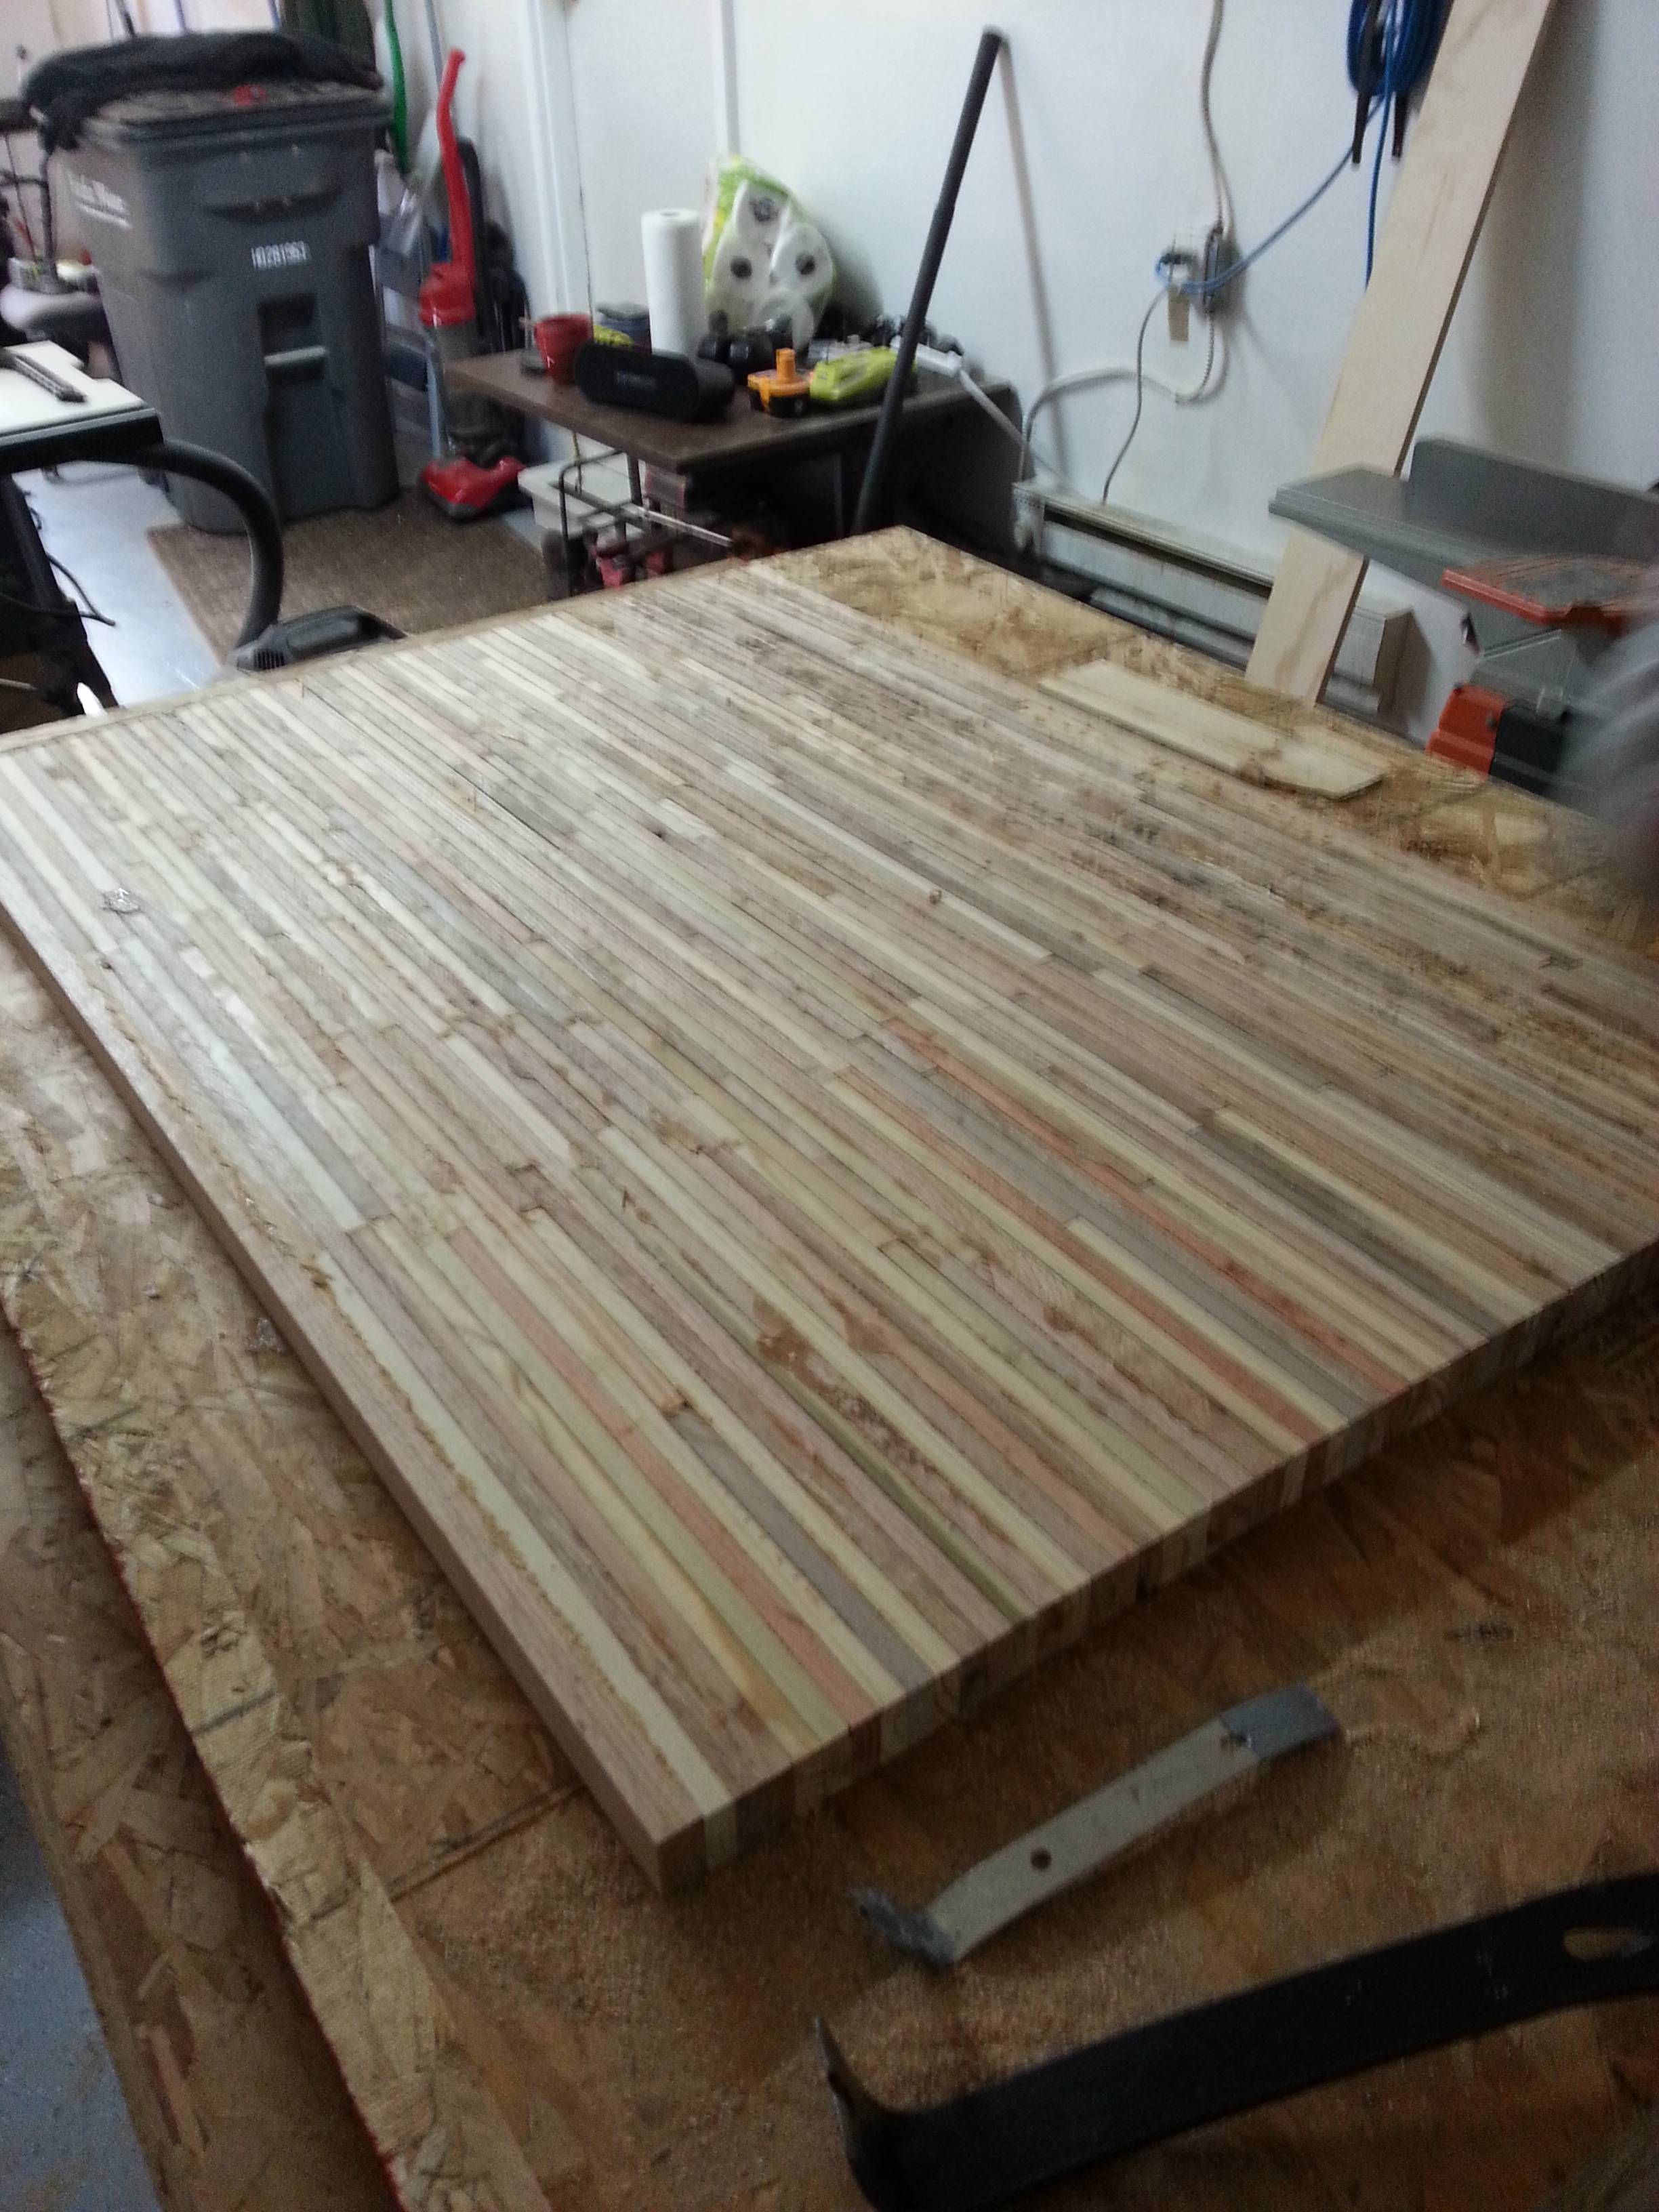 Wooden transport pallets have become increasingly popular for diy - Pallet Table